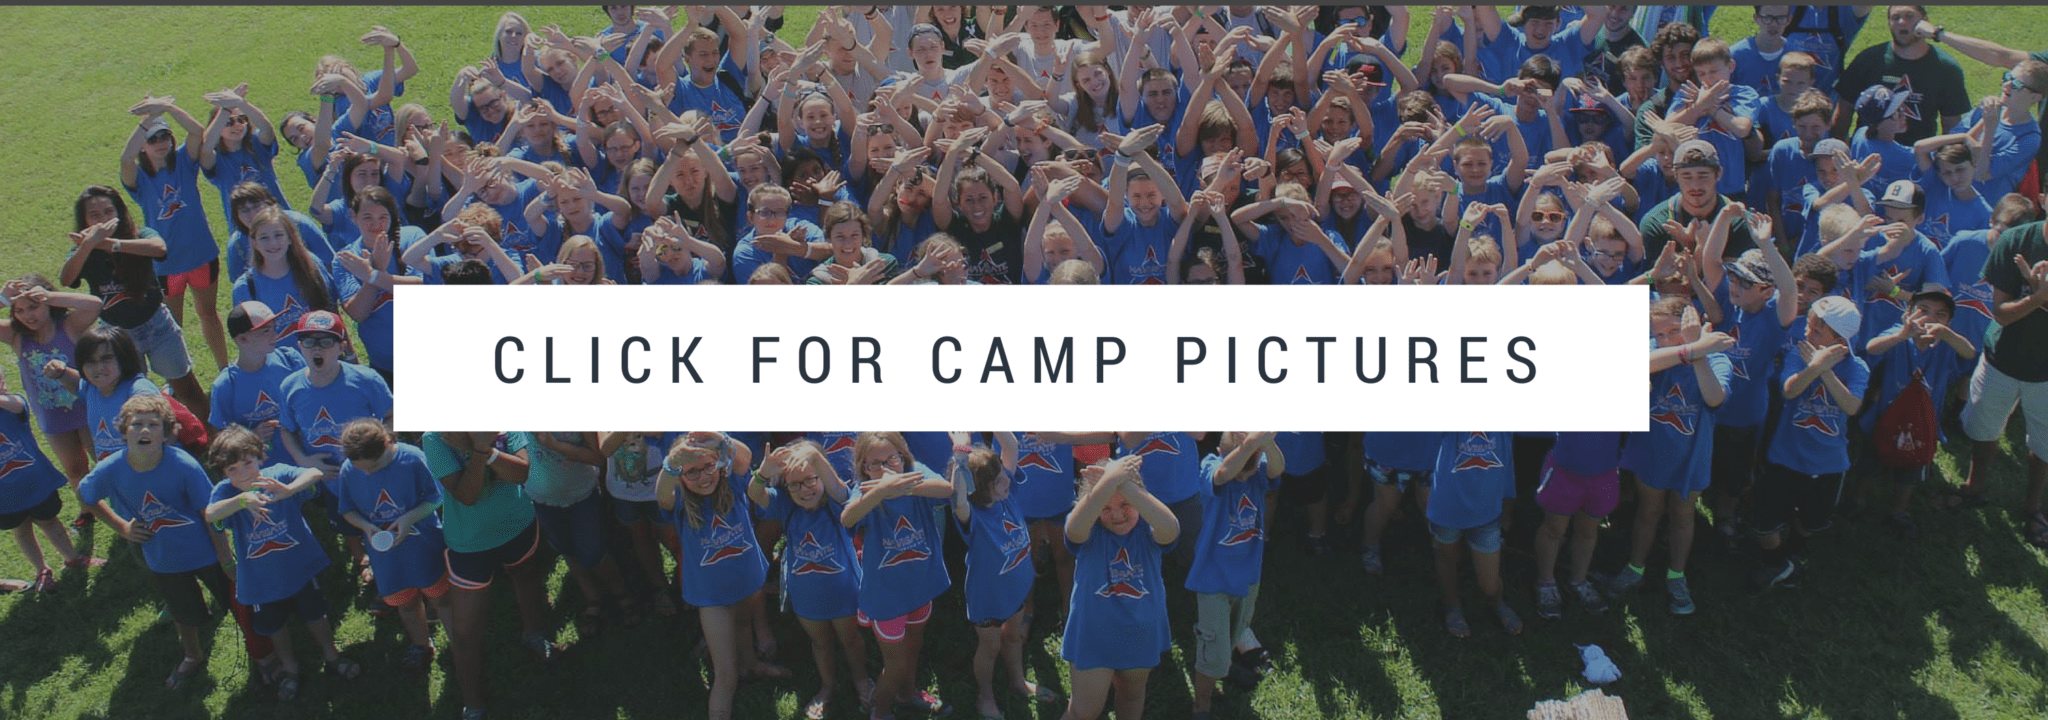 see-camp-pictures-1